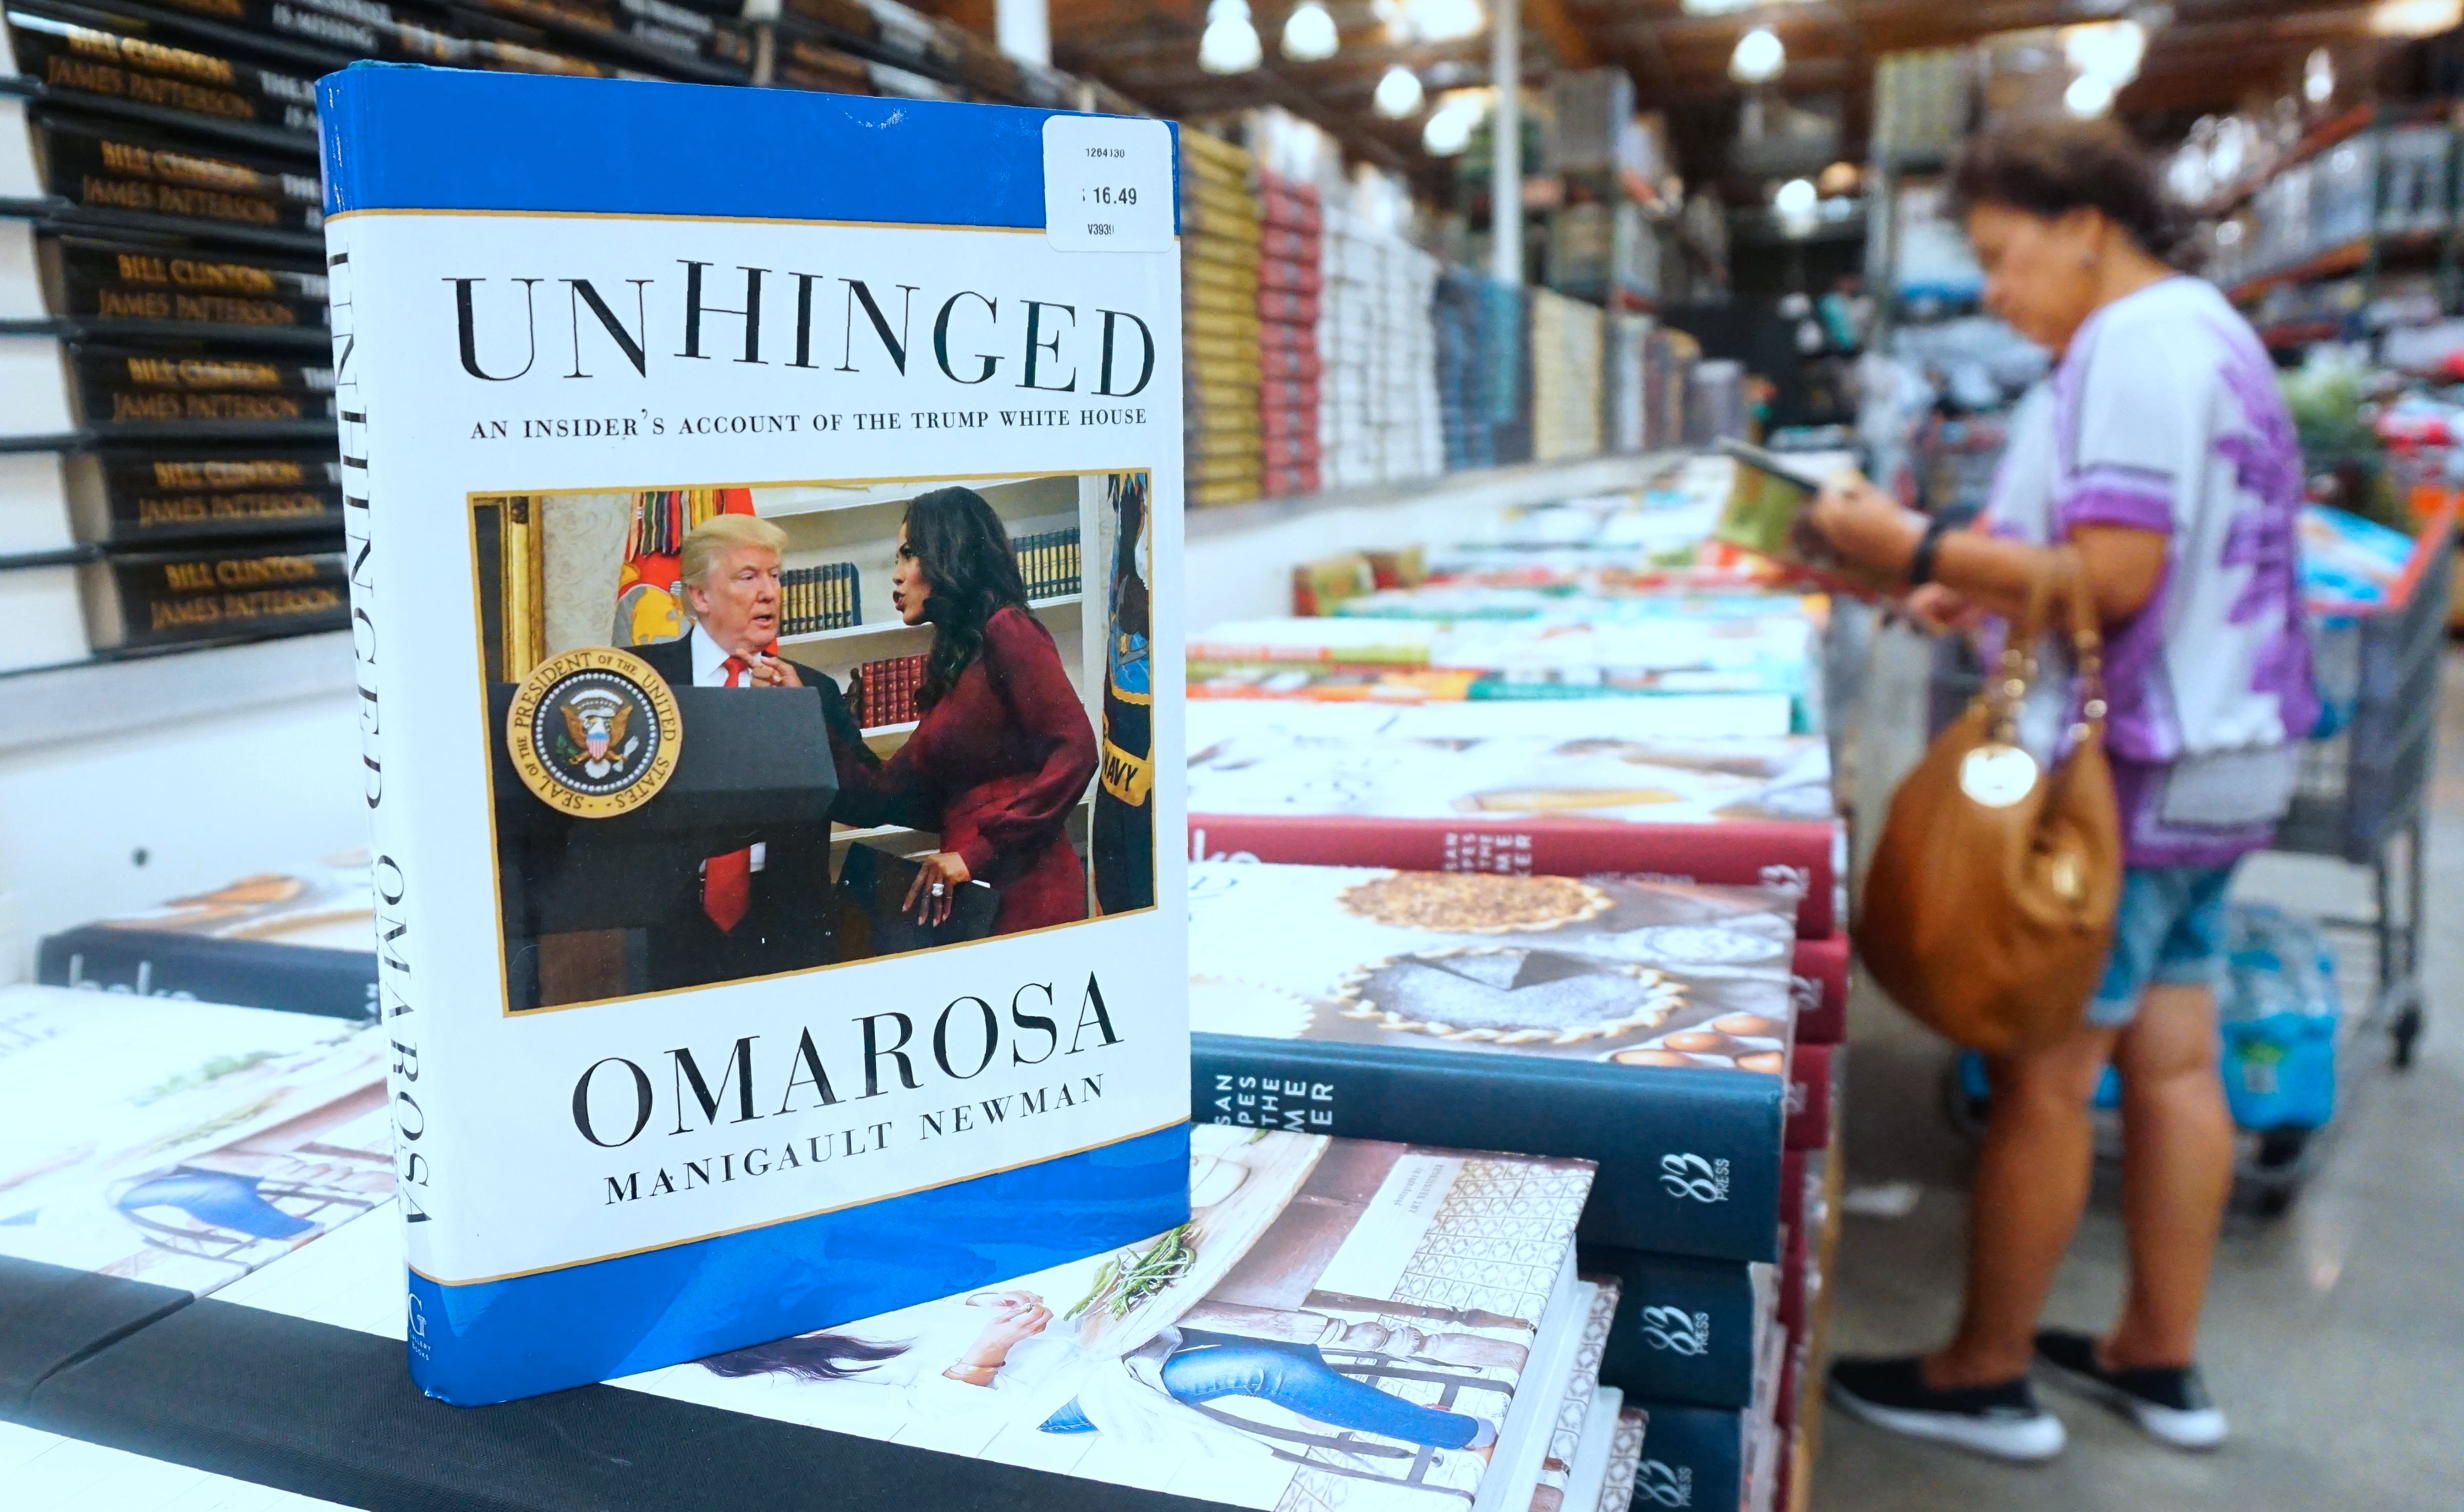 Omarosa Manigualt-Newman's newly released book 'Unhinged' is displayed and for sale in Alhambra, California on August 4, 2018. - The former reality TV participant and political aide to the Trump government has been accused by the Trump campaign of violating a 2016 confidentiality agreement with her tell-all book and publicity tour. (Photo by Frederic J. BROWN / AFP)        (Photo credit should read FREDERIC J. BROWN/AFP/Getty Images)